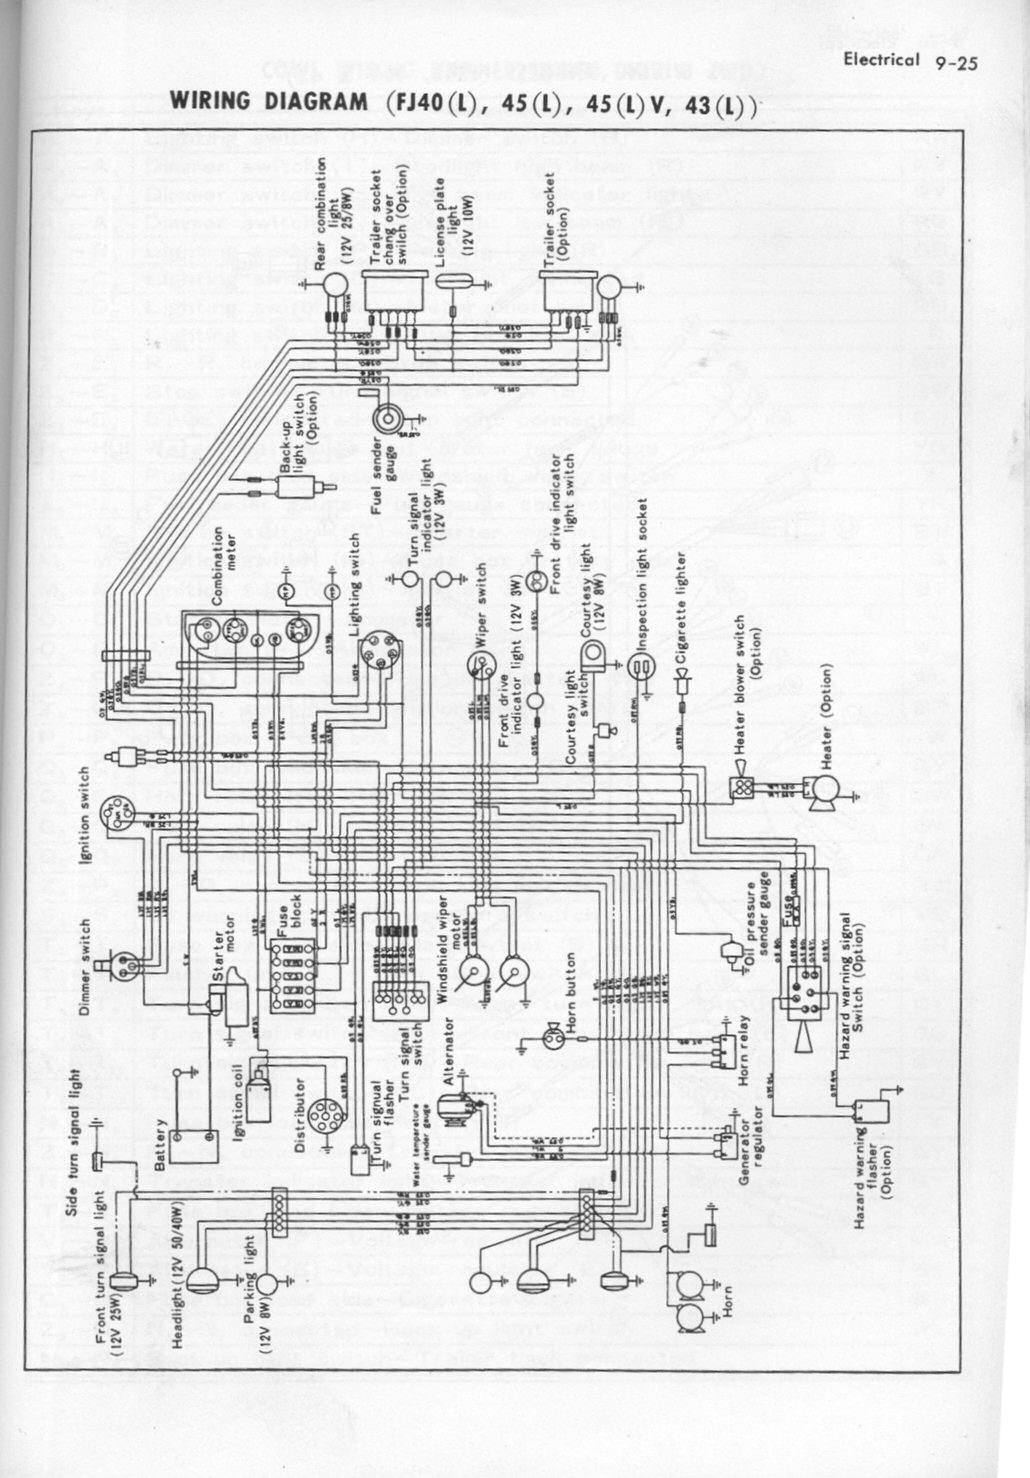 Fj40 Ignition Switch Wiring Diagram, Fj40, Get Free Image